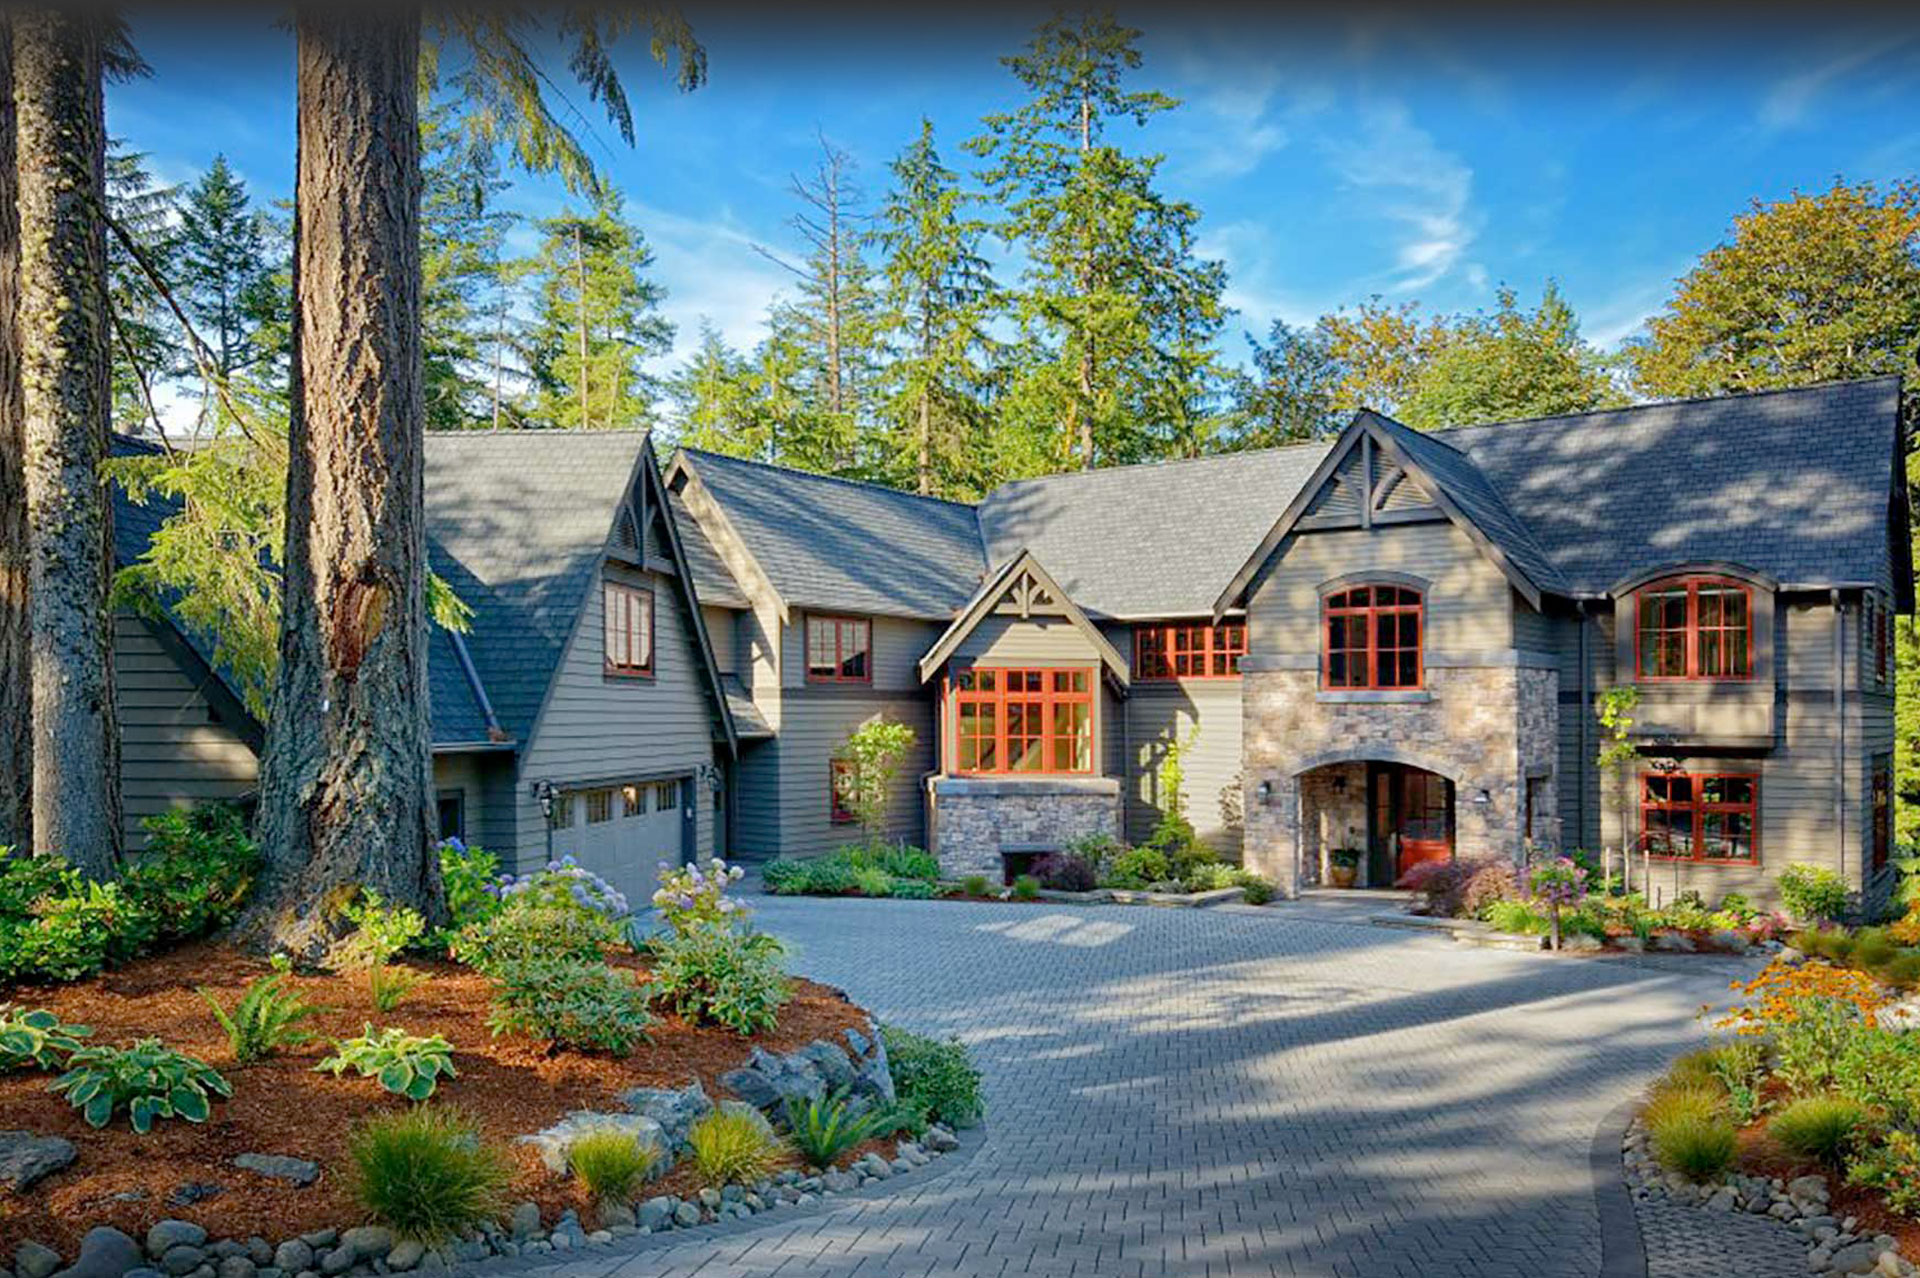 Design Guild Homes. Wooded Highlands custom built home.